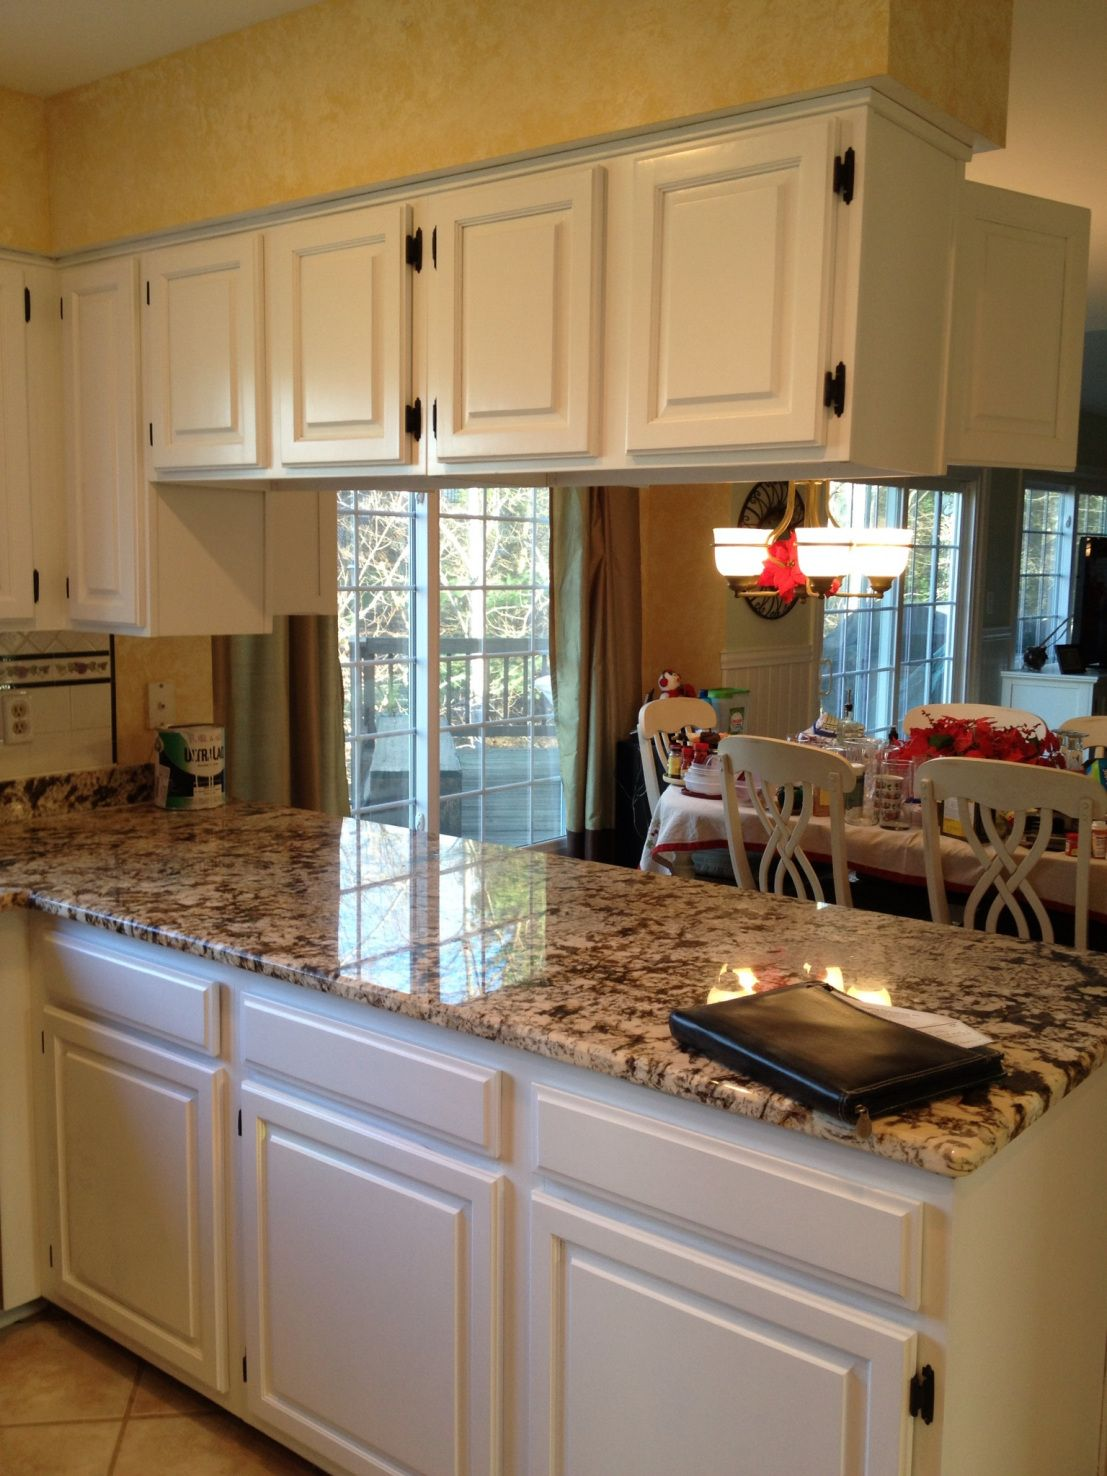 2018 Off White Cabinets with Granite Countertops - Kitchen ...